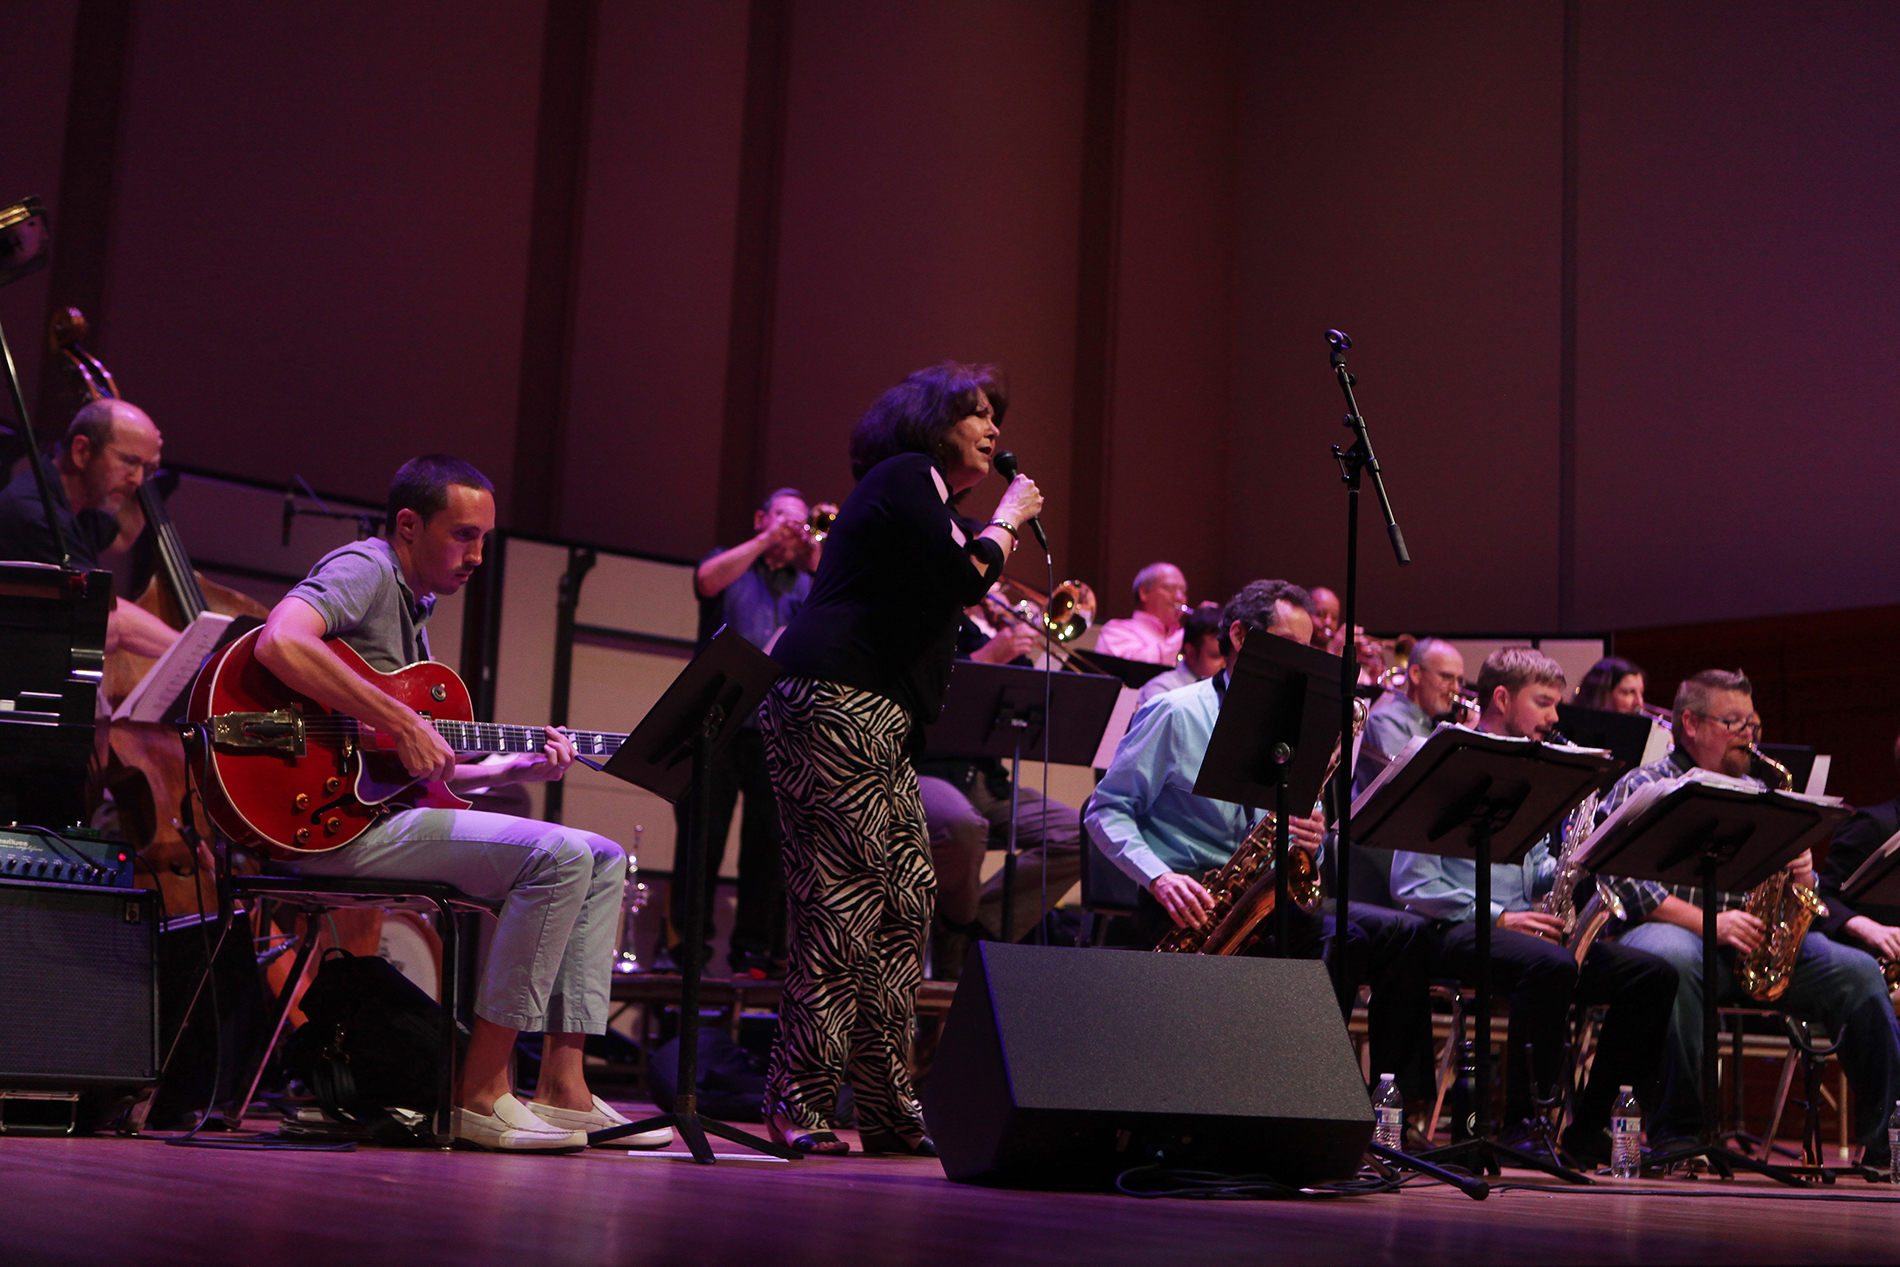 a woman sings on stage at a jazz concert